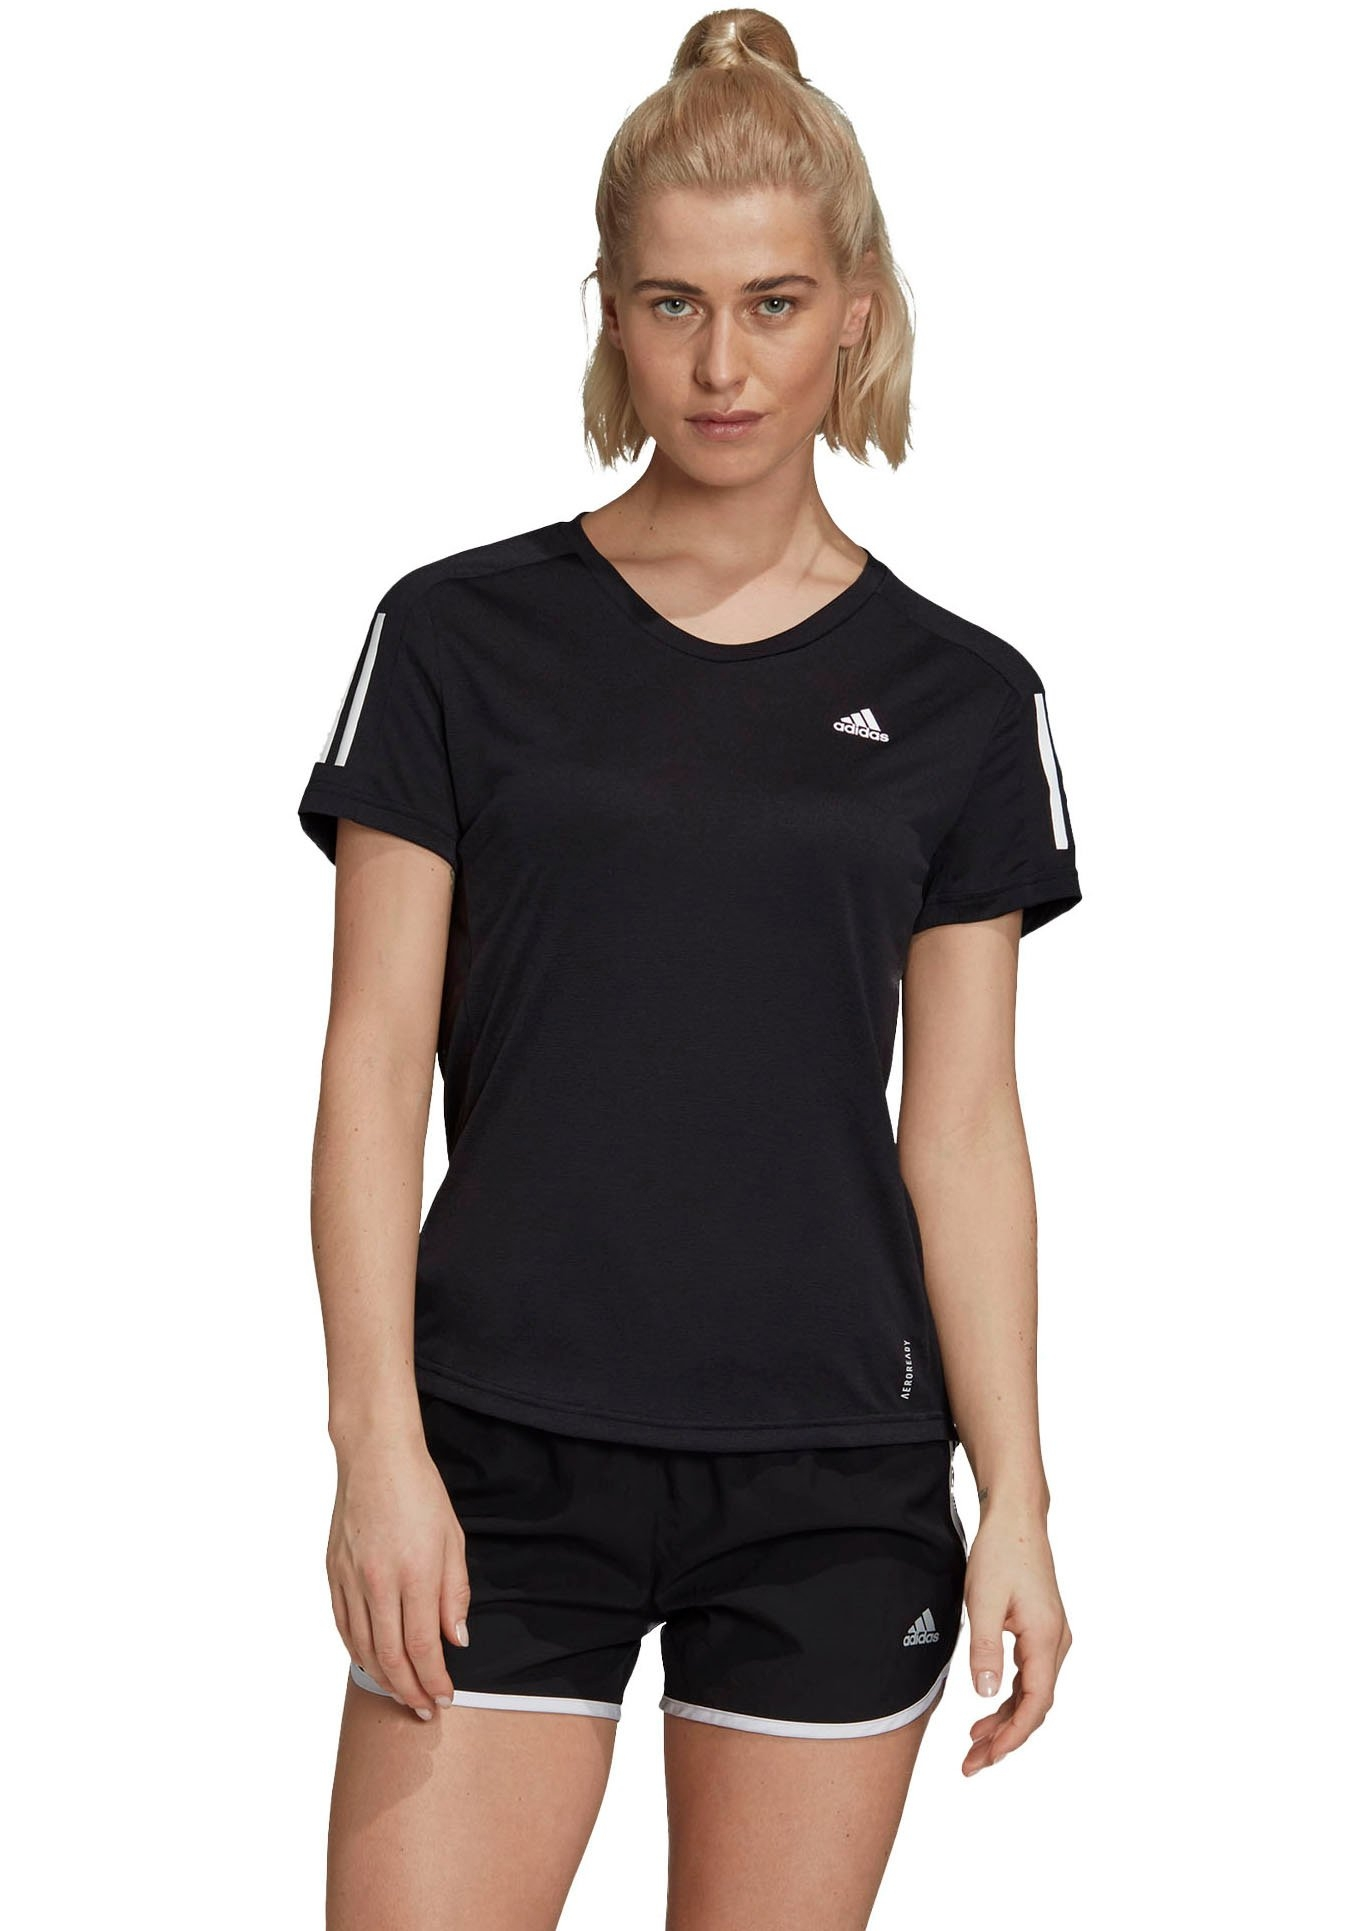 adidas Performance runningshirt »OWN THE RUN TEE« bij OTTO online kopen